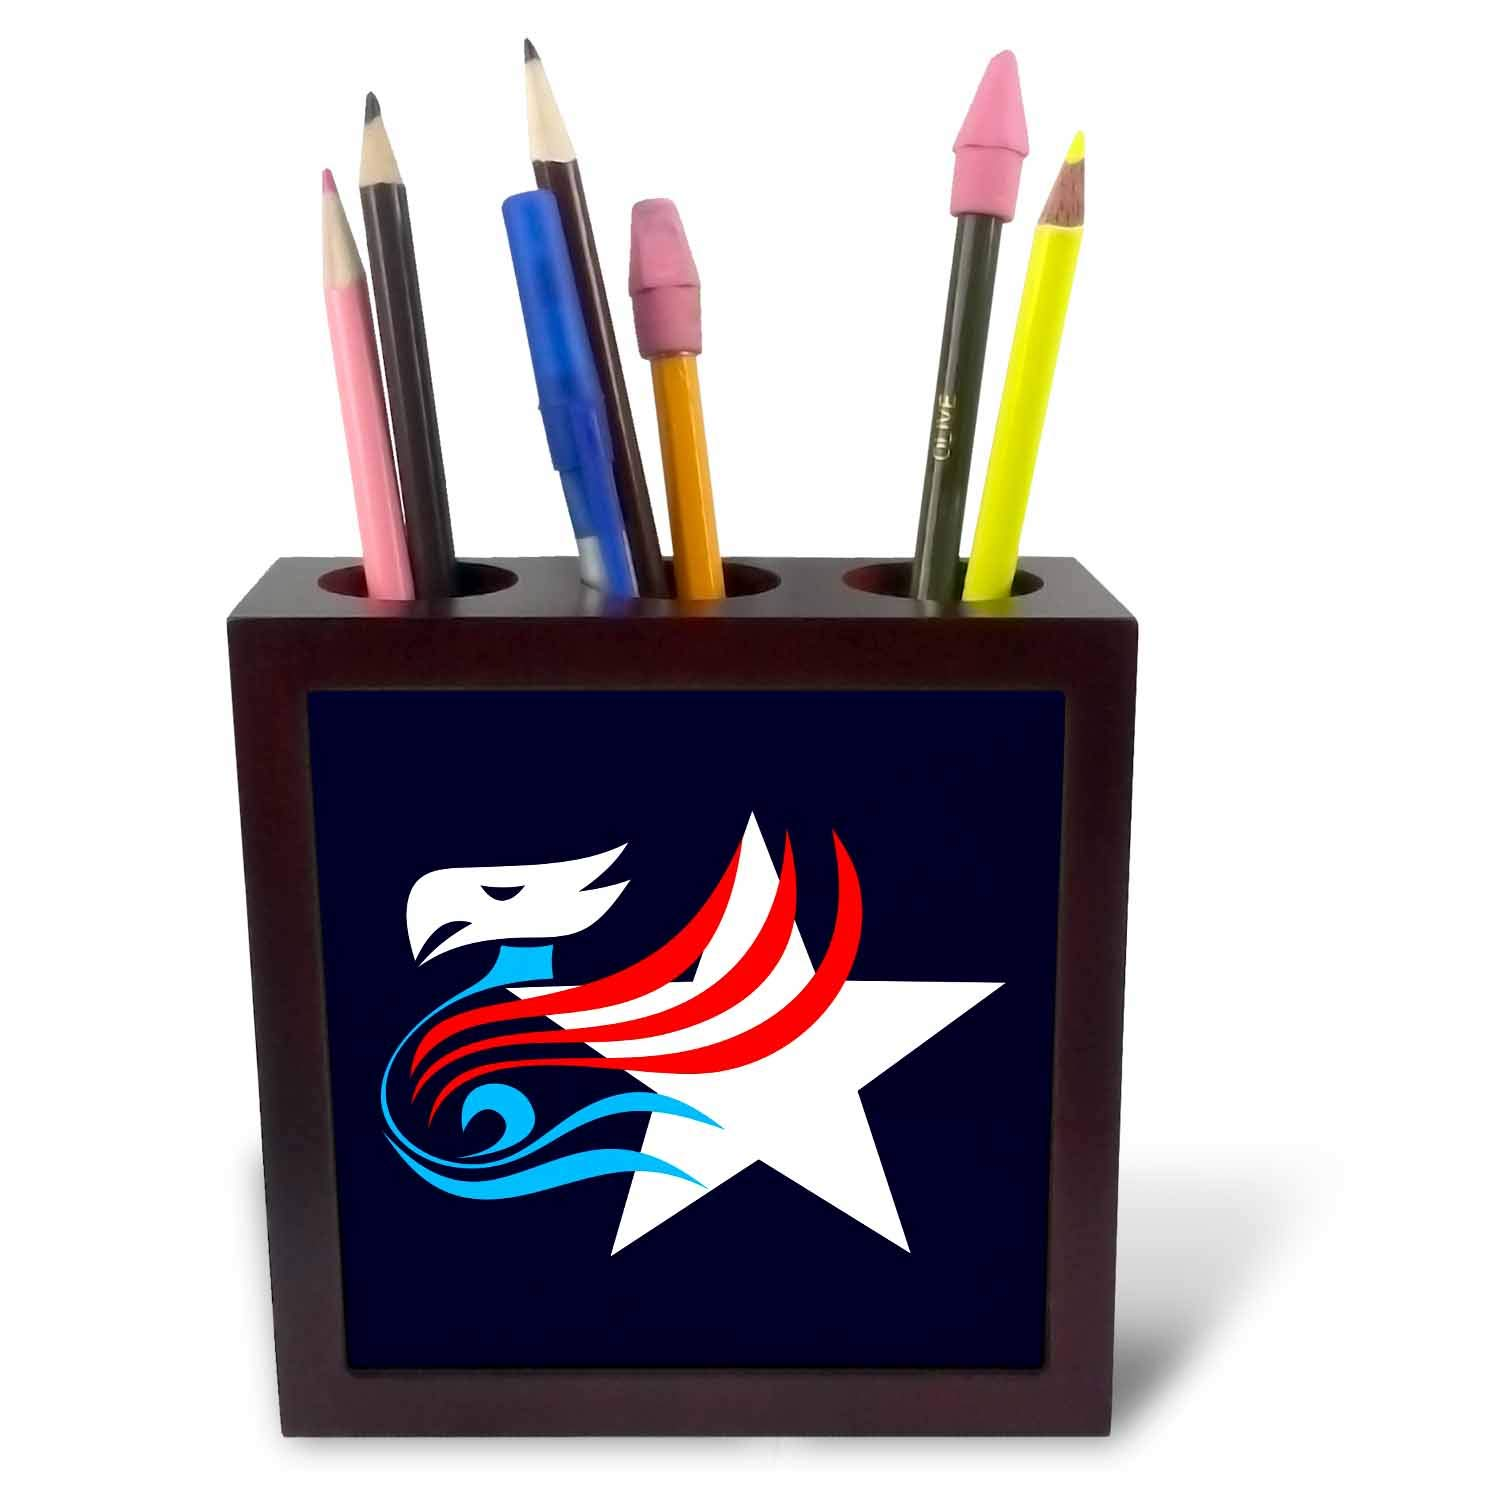 3dRose Alexis Design - America - Bold Eagle and a White Star on Blue. American Patriot Design - 5 inch Tile Pen Holder (ph_290572_1)